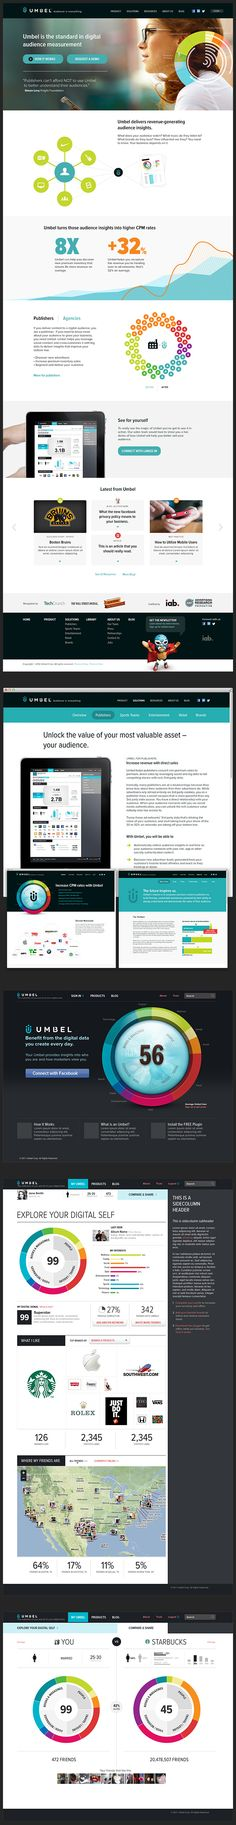 Lightly populated rows of content and colourful visuals help the homepage pop. The subpages are subsequently way to busy and disorganized. more on http://themeforest.net/?ref=Vision7Studio